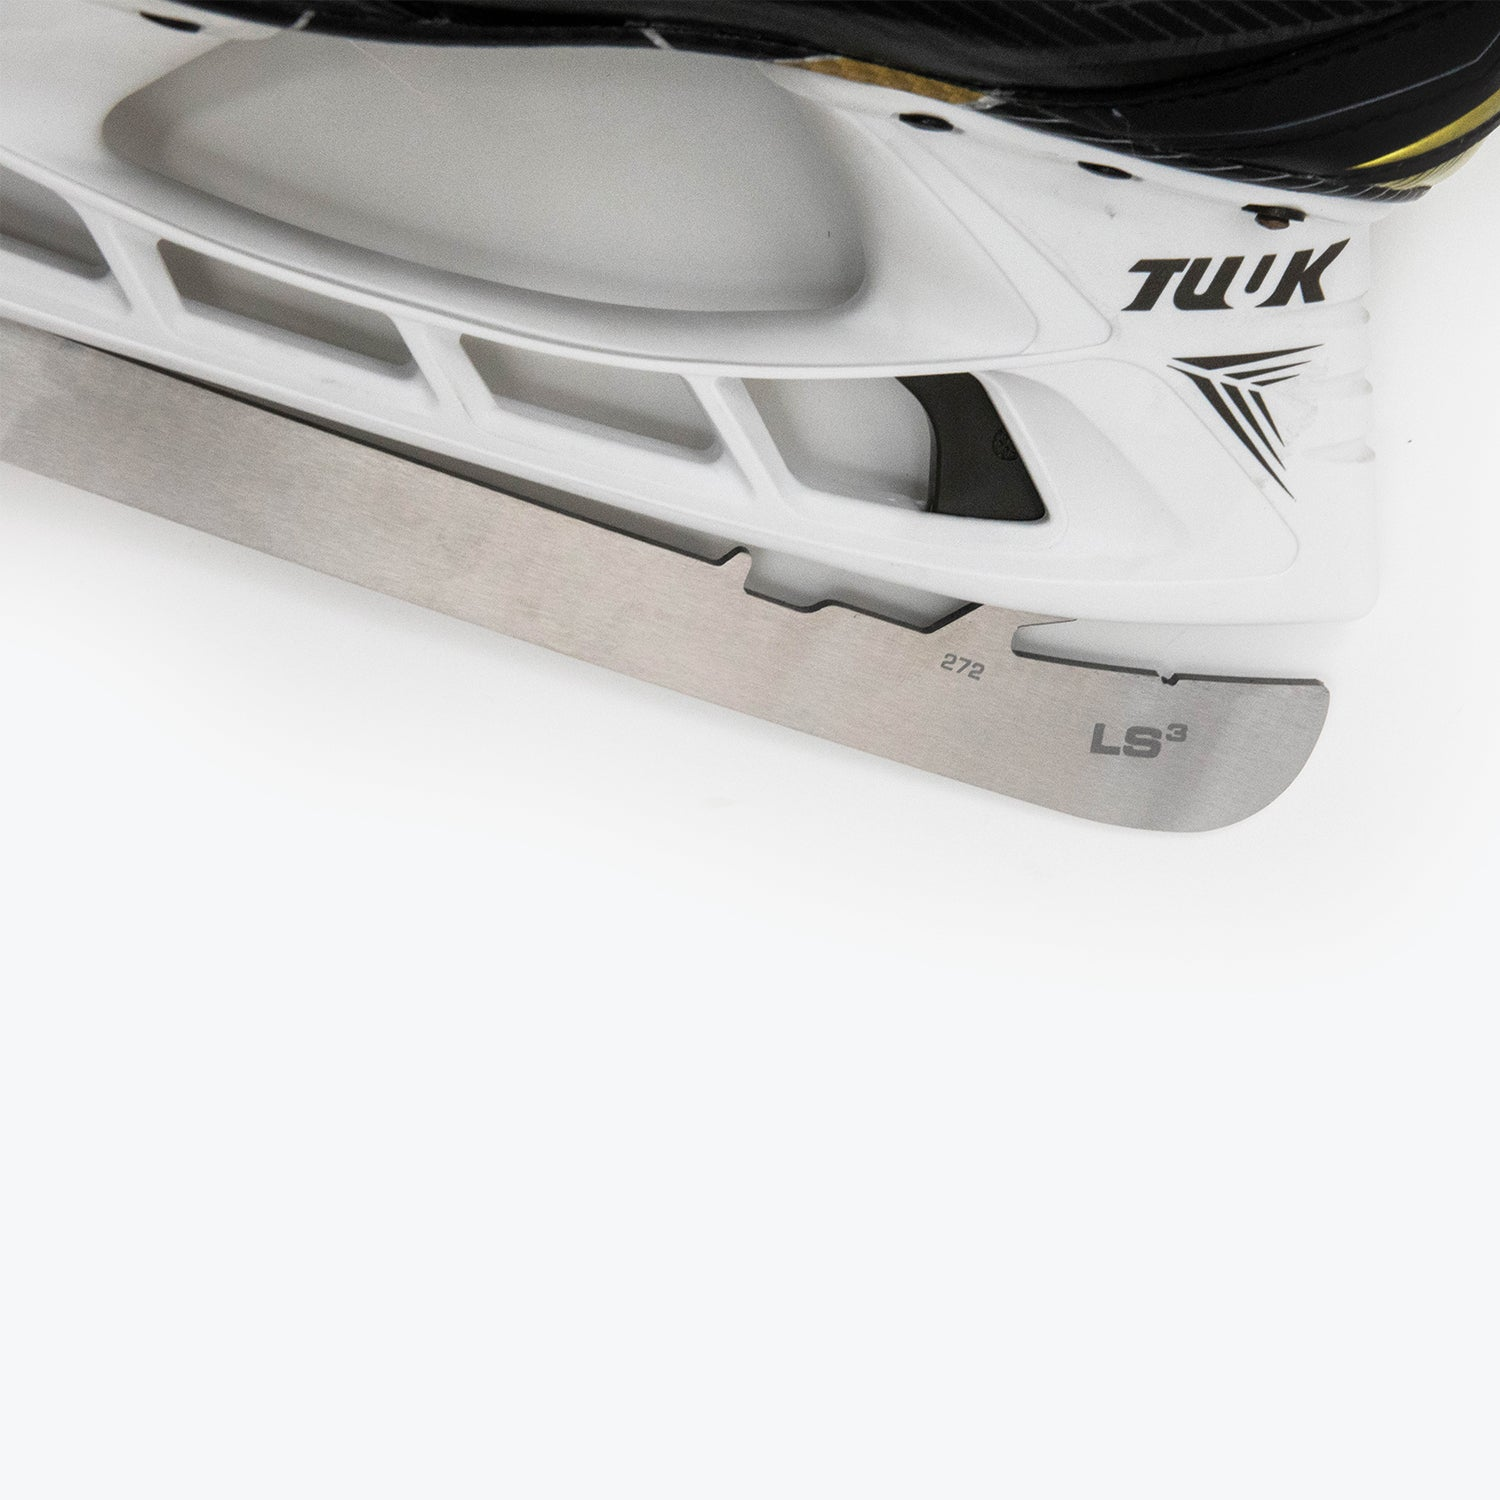 Bauer TUUK Lightspeed 3 Steel Edge Runner